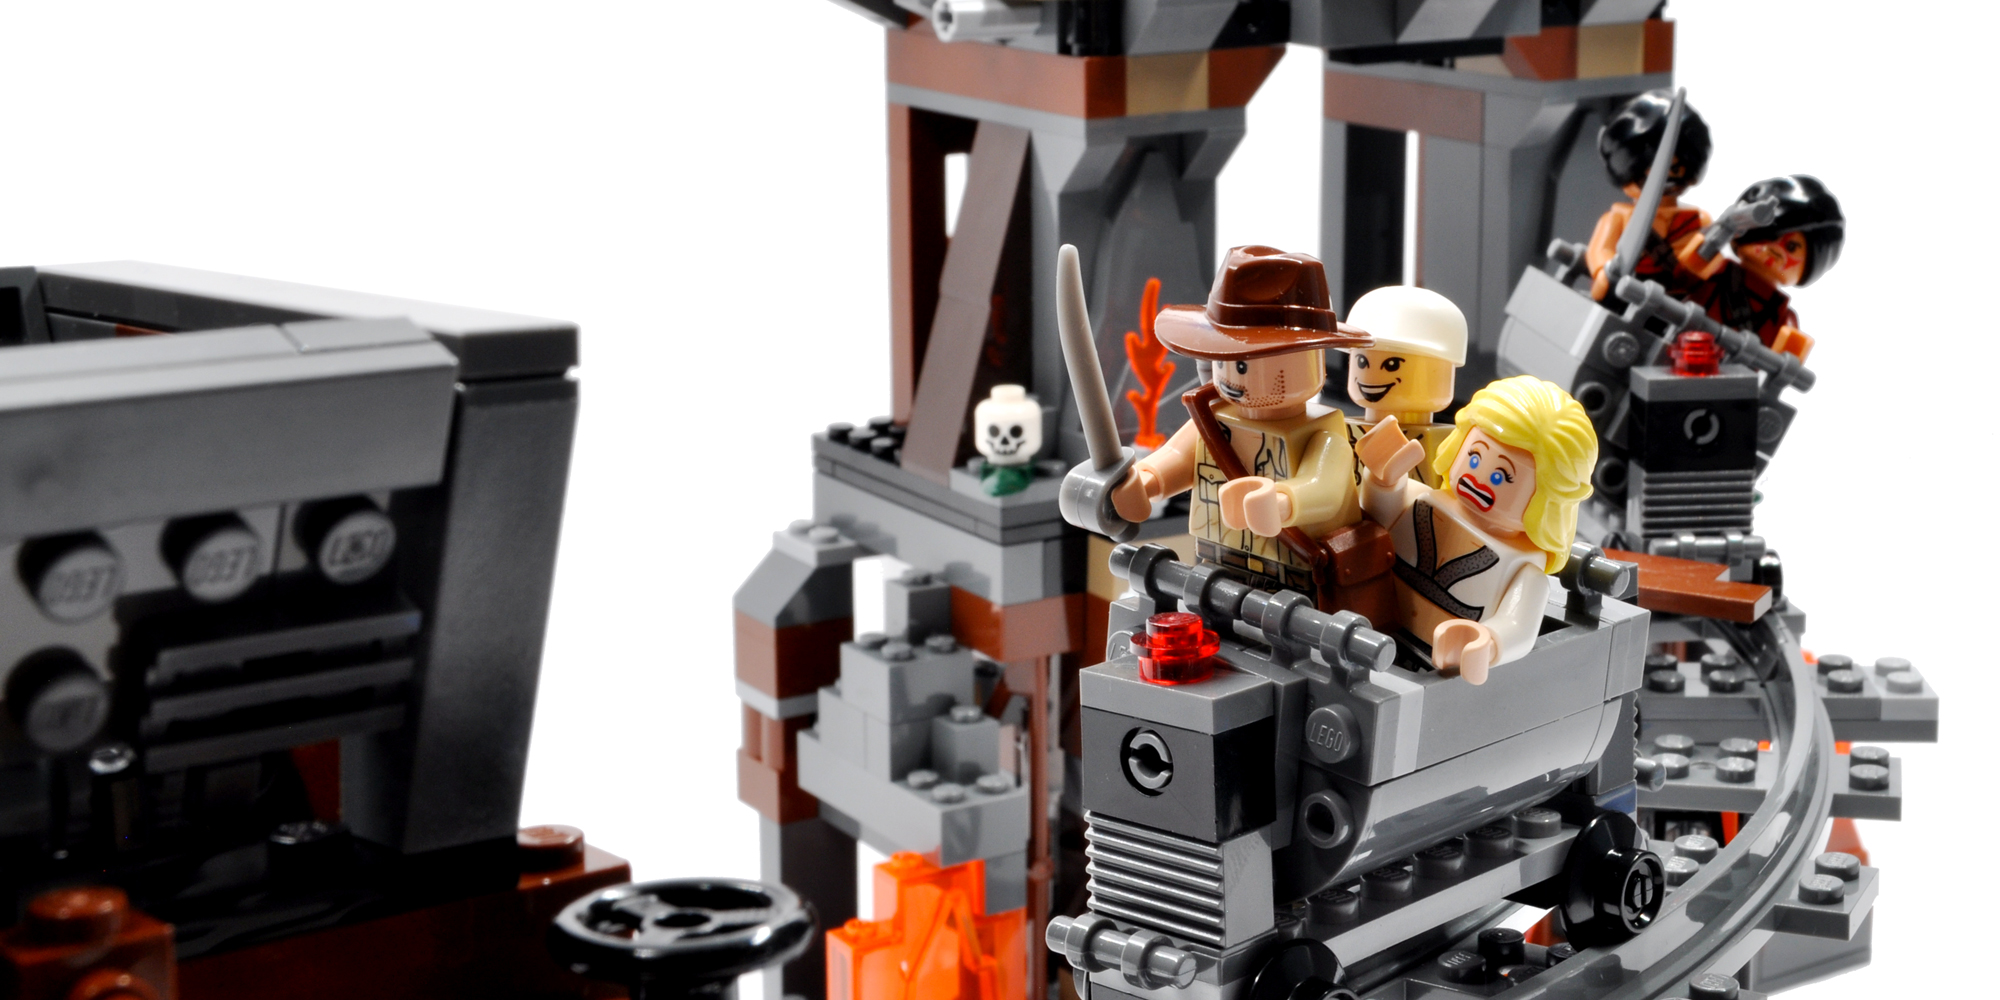 Lego 7199: The Temple of Doom